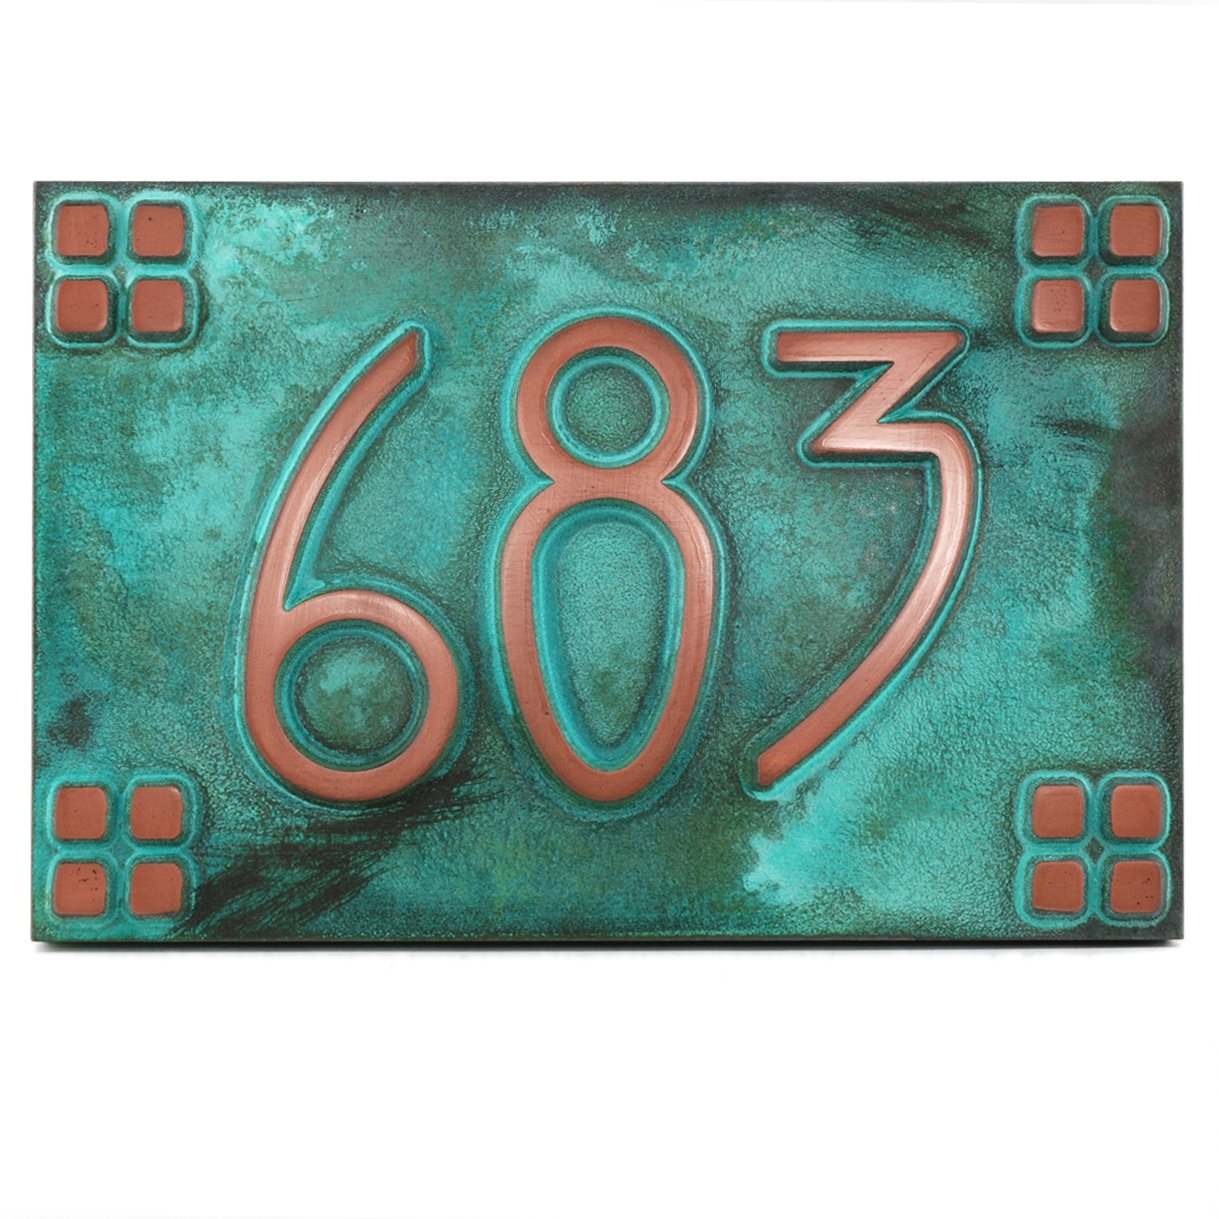 American Craftsman Address Plaque Squares Only 12x8 - Prairie Style - USA Made - Raised Copper Verdi Coated by Atlas Signs and Plaques